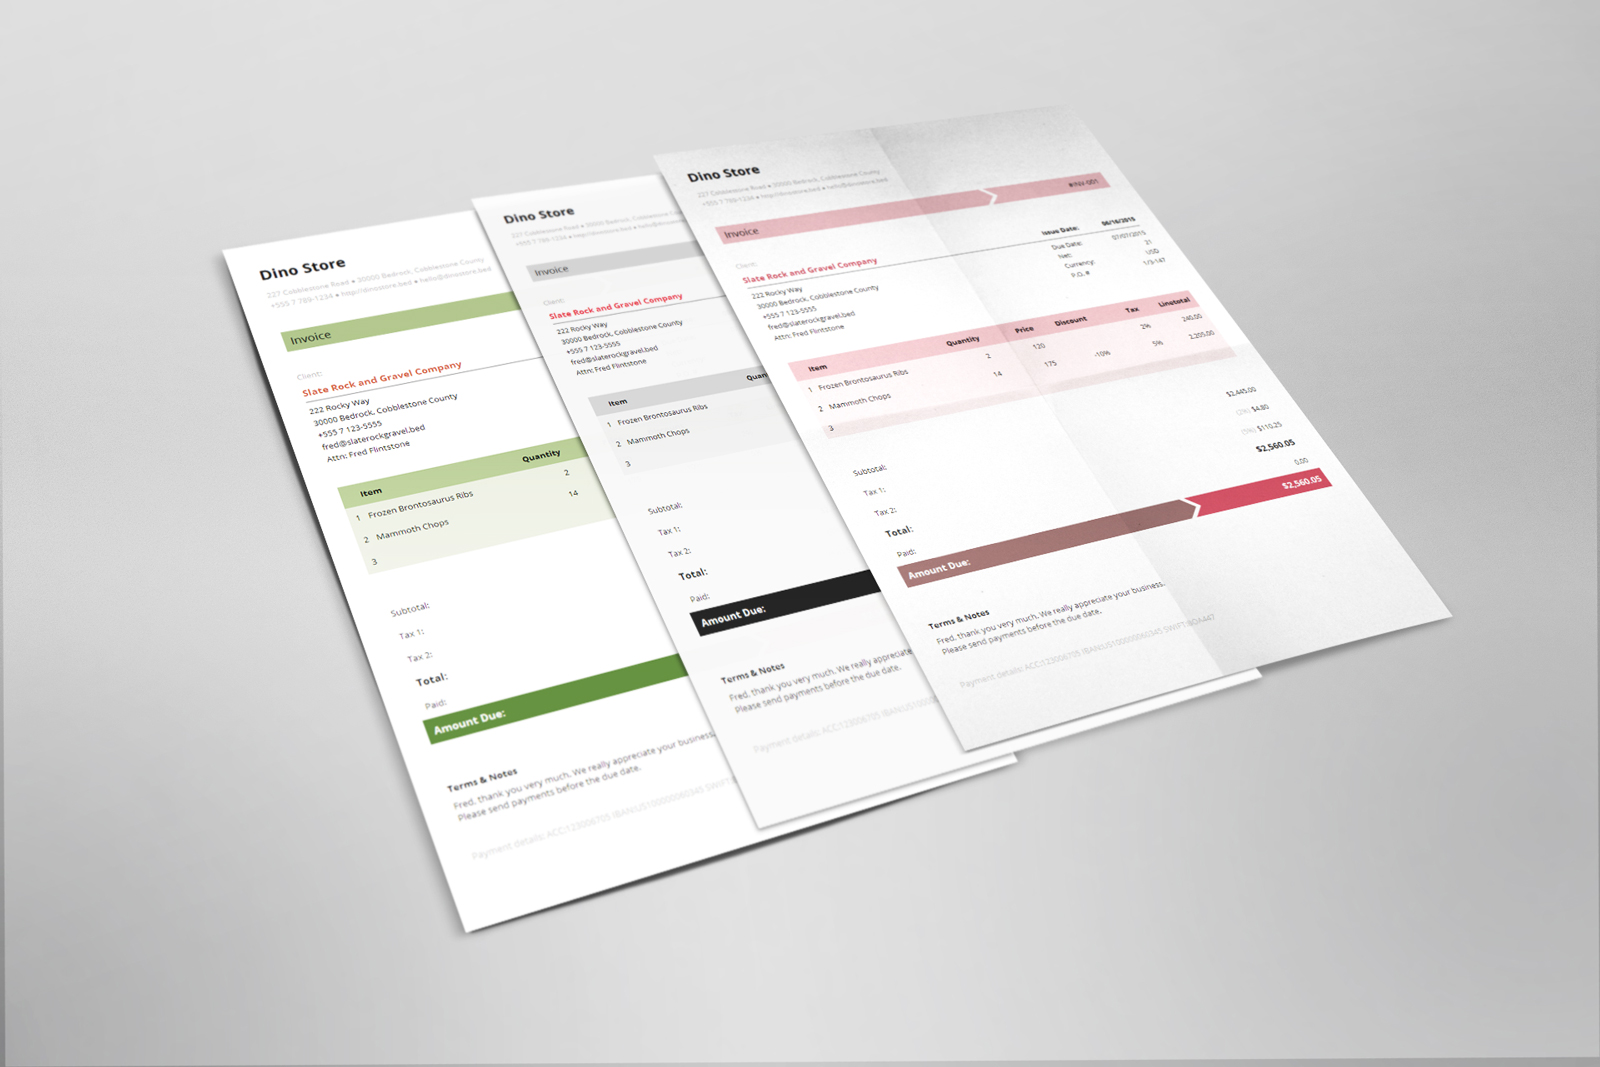 Armo is an easy-to-use invoice template with elegant, simple, and sharp business look. There is a strong focus on usability, so all information are wrapped up in a sophisticated, trustworthy and beautiful design that perfectly combines form and function.